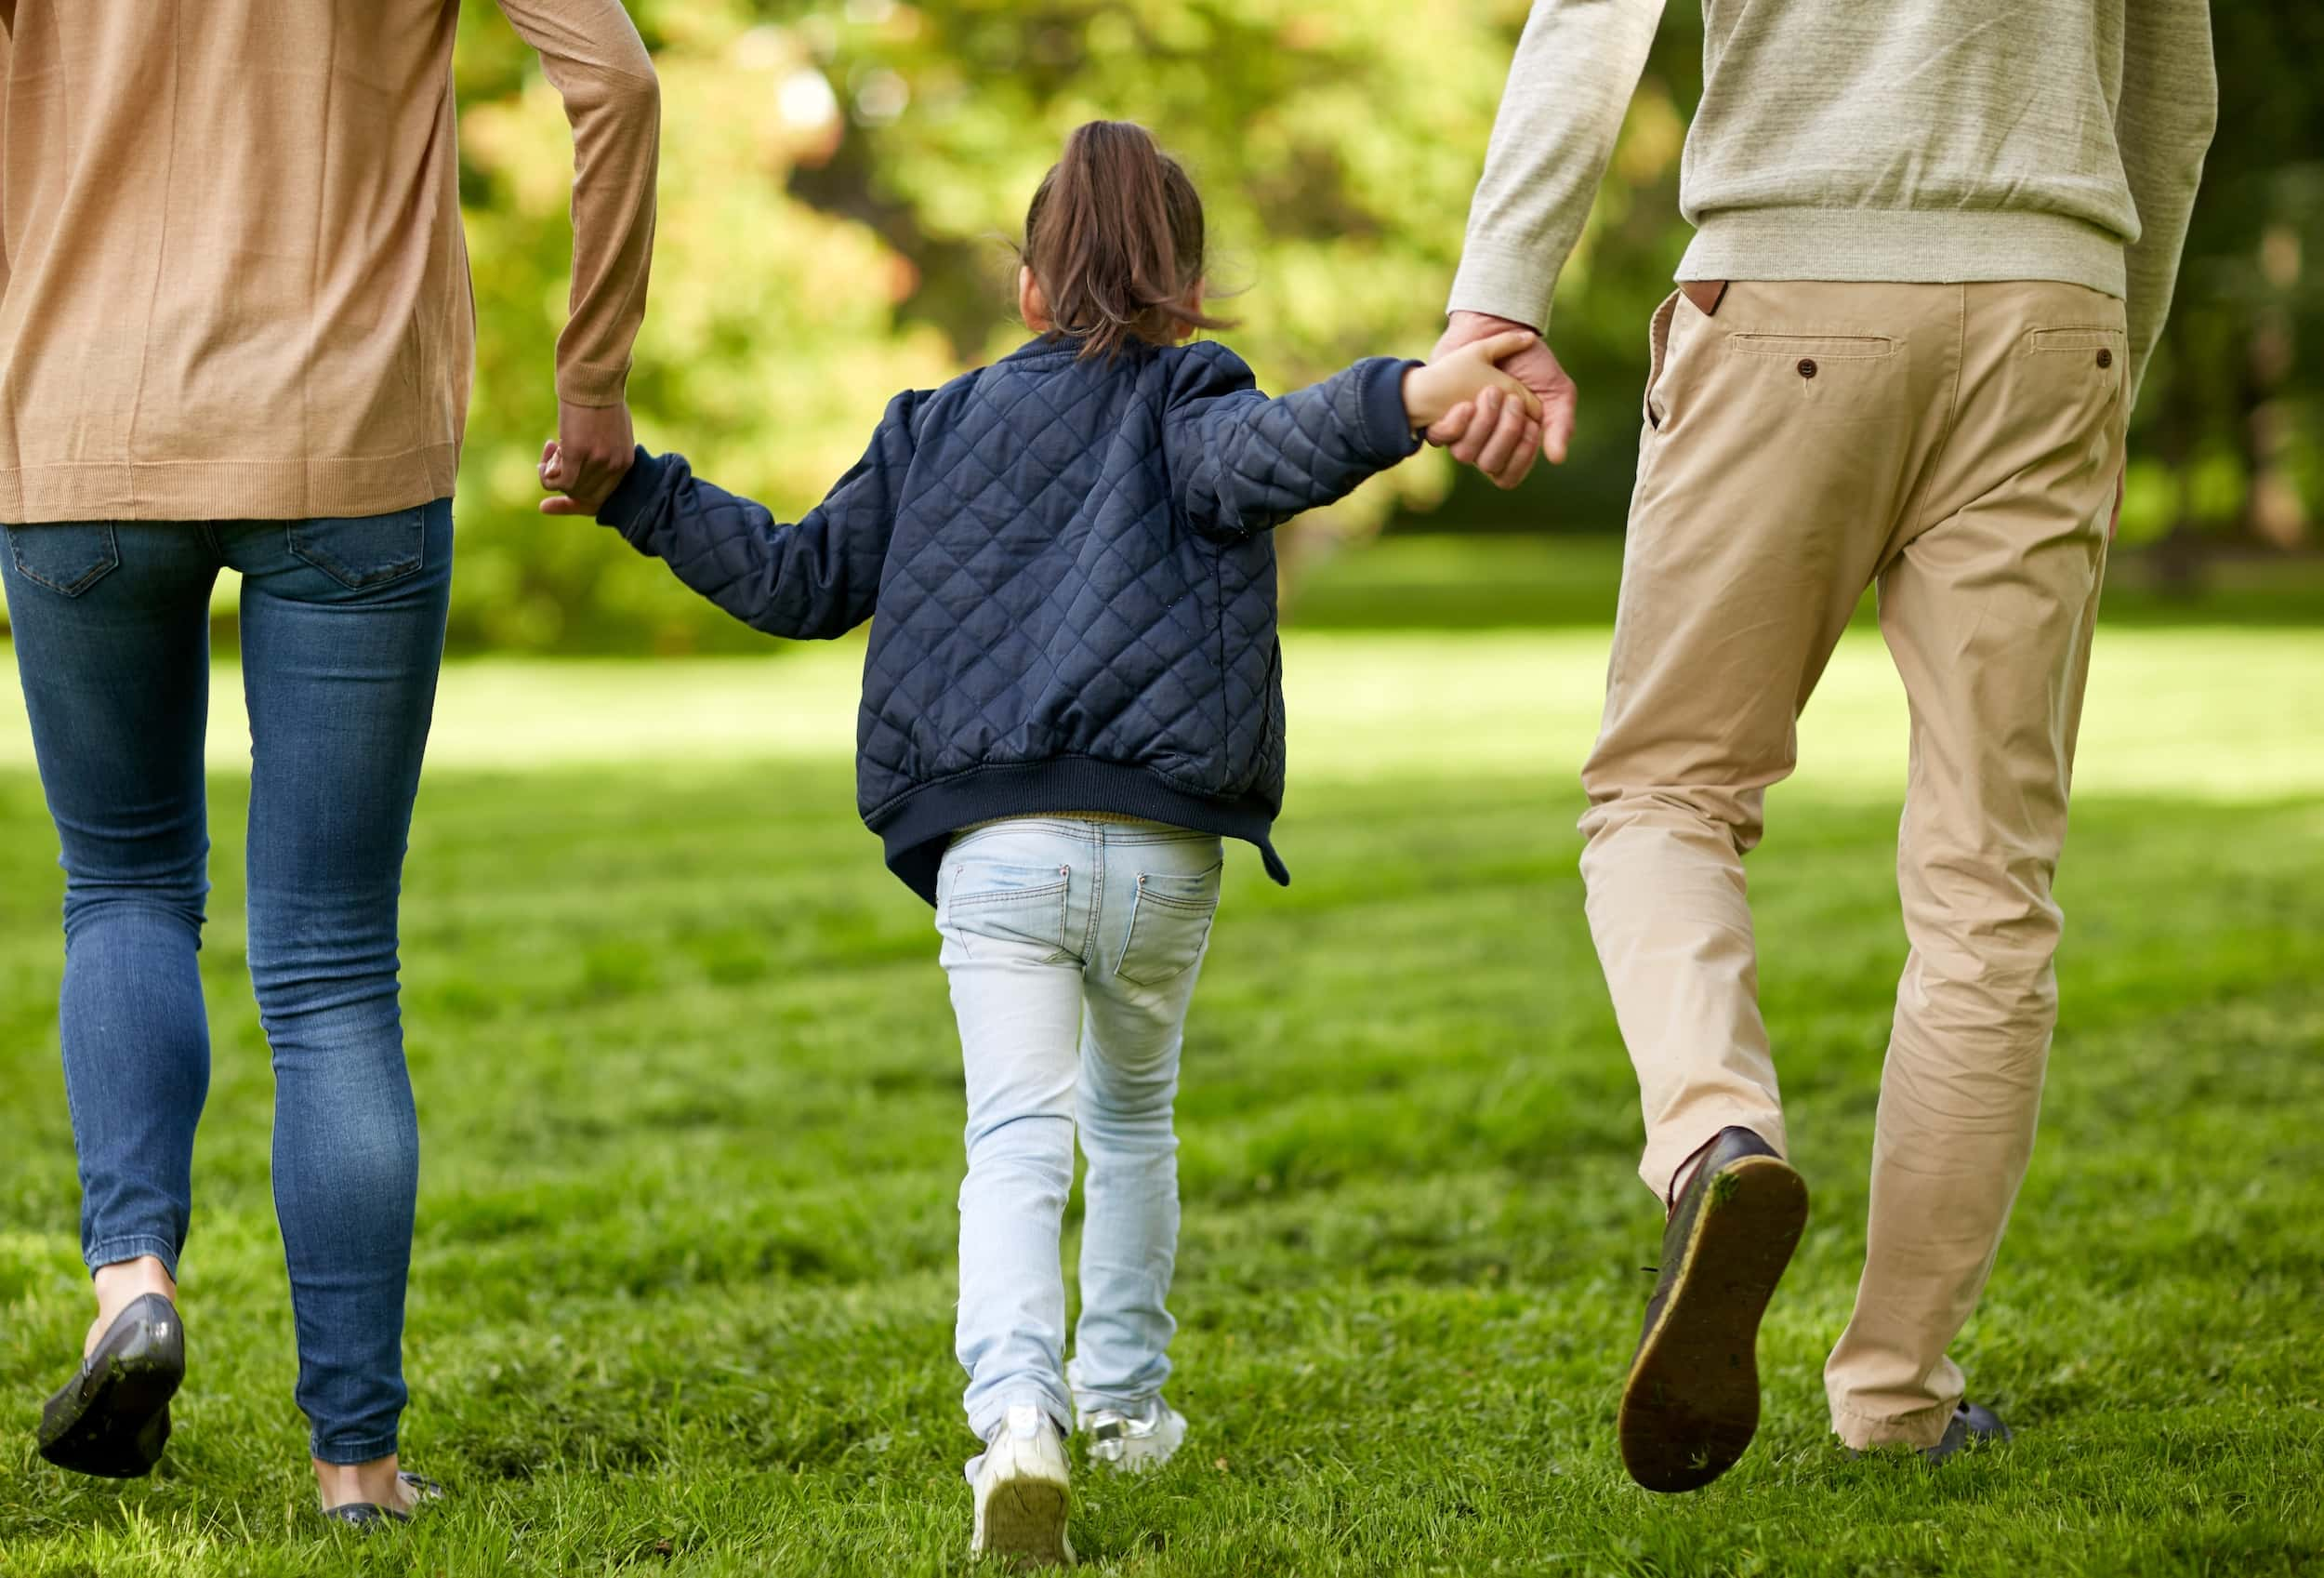 New foster parents walk with their recently adopted child